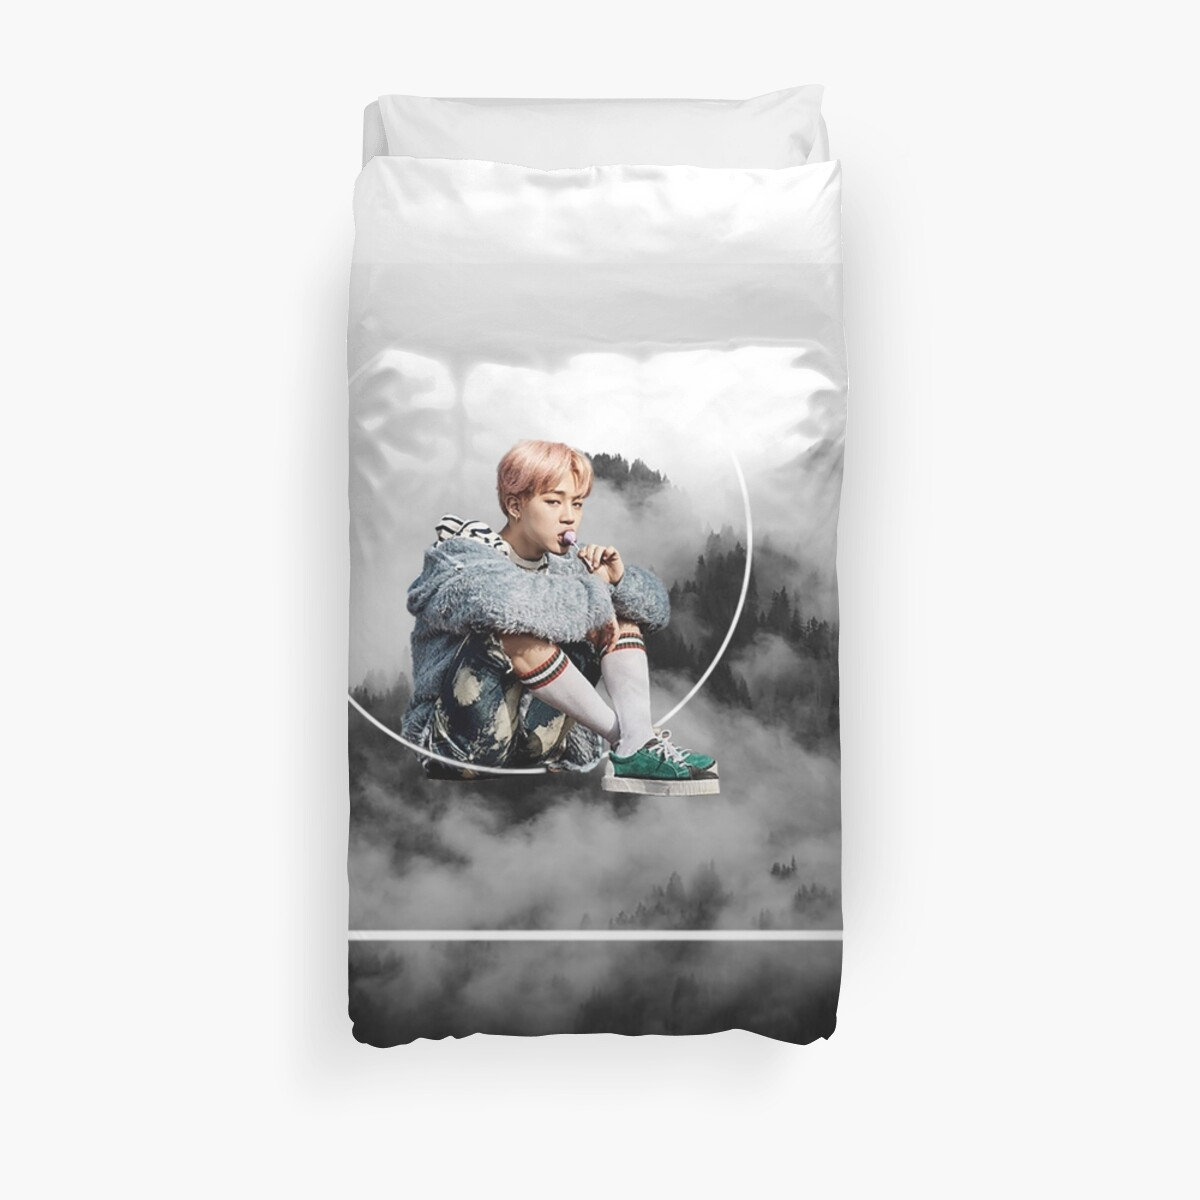 Quot Bts Jimin Nature Quot Duvet Covers By Seoulfood Redbubble